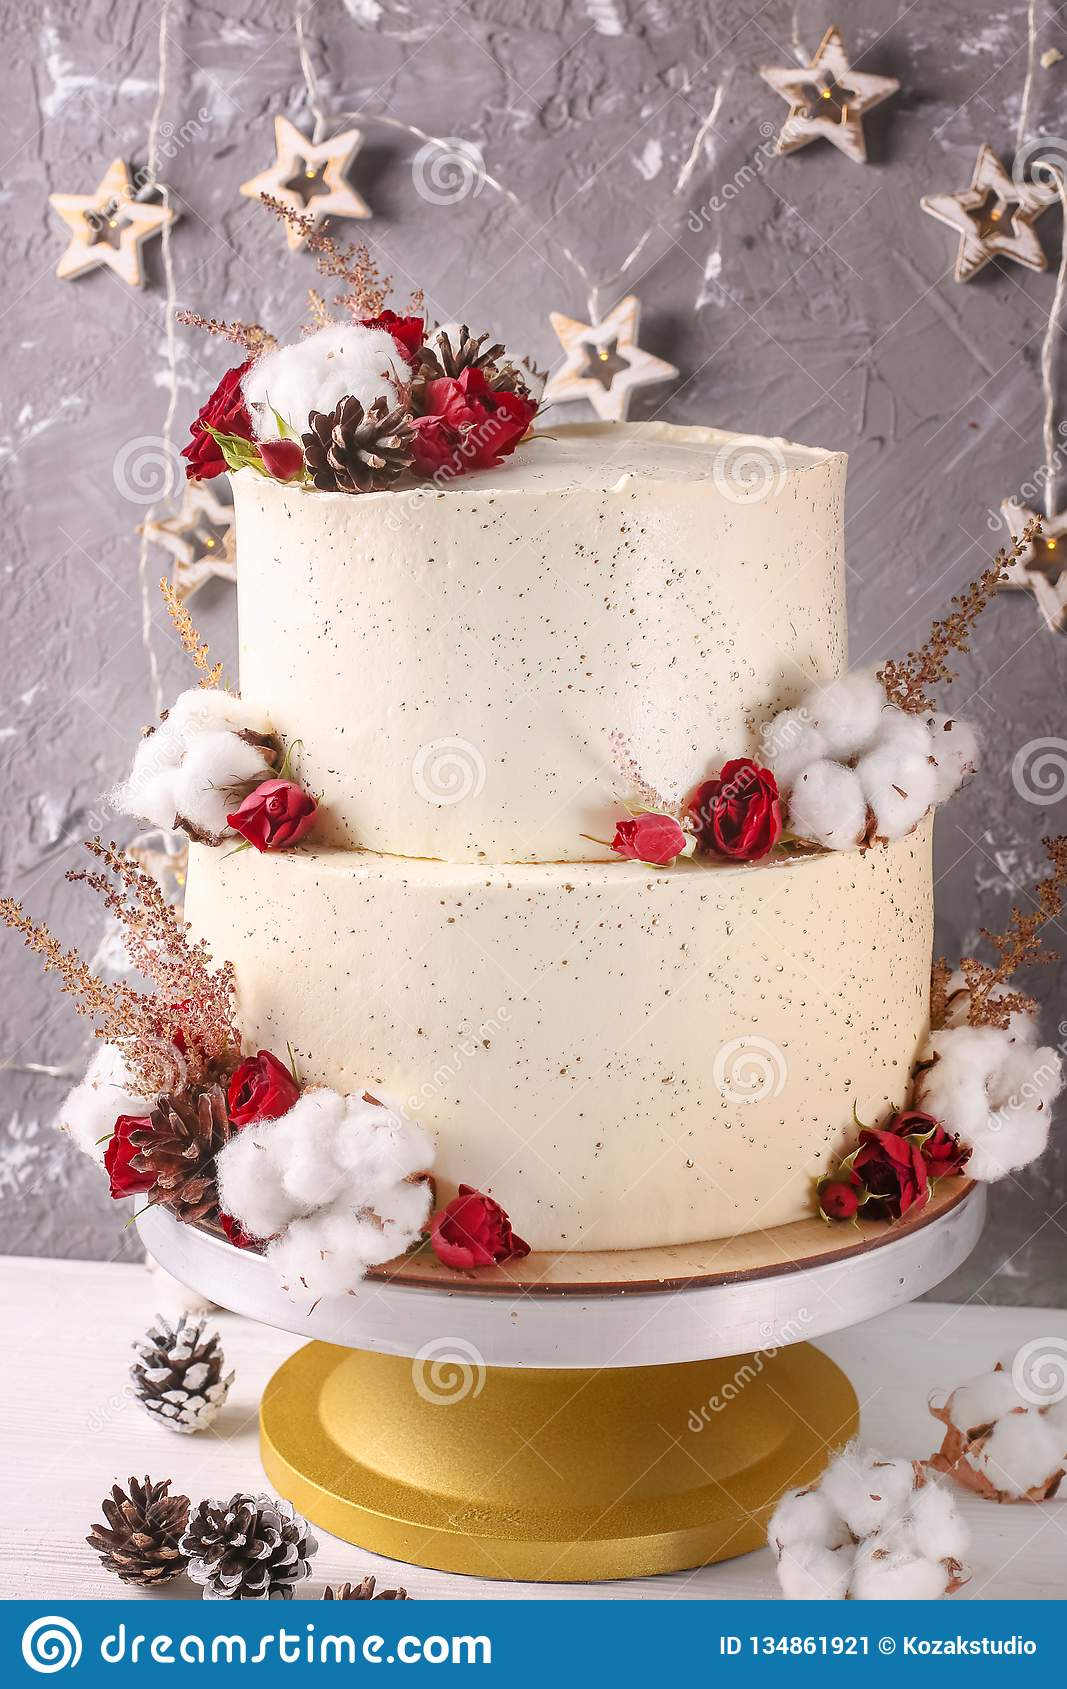 Christmas Cake With Flowers And Chocolate Wedding Details